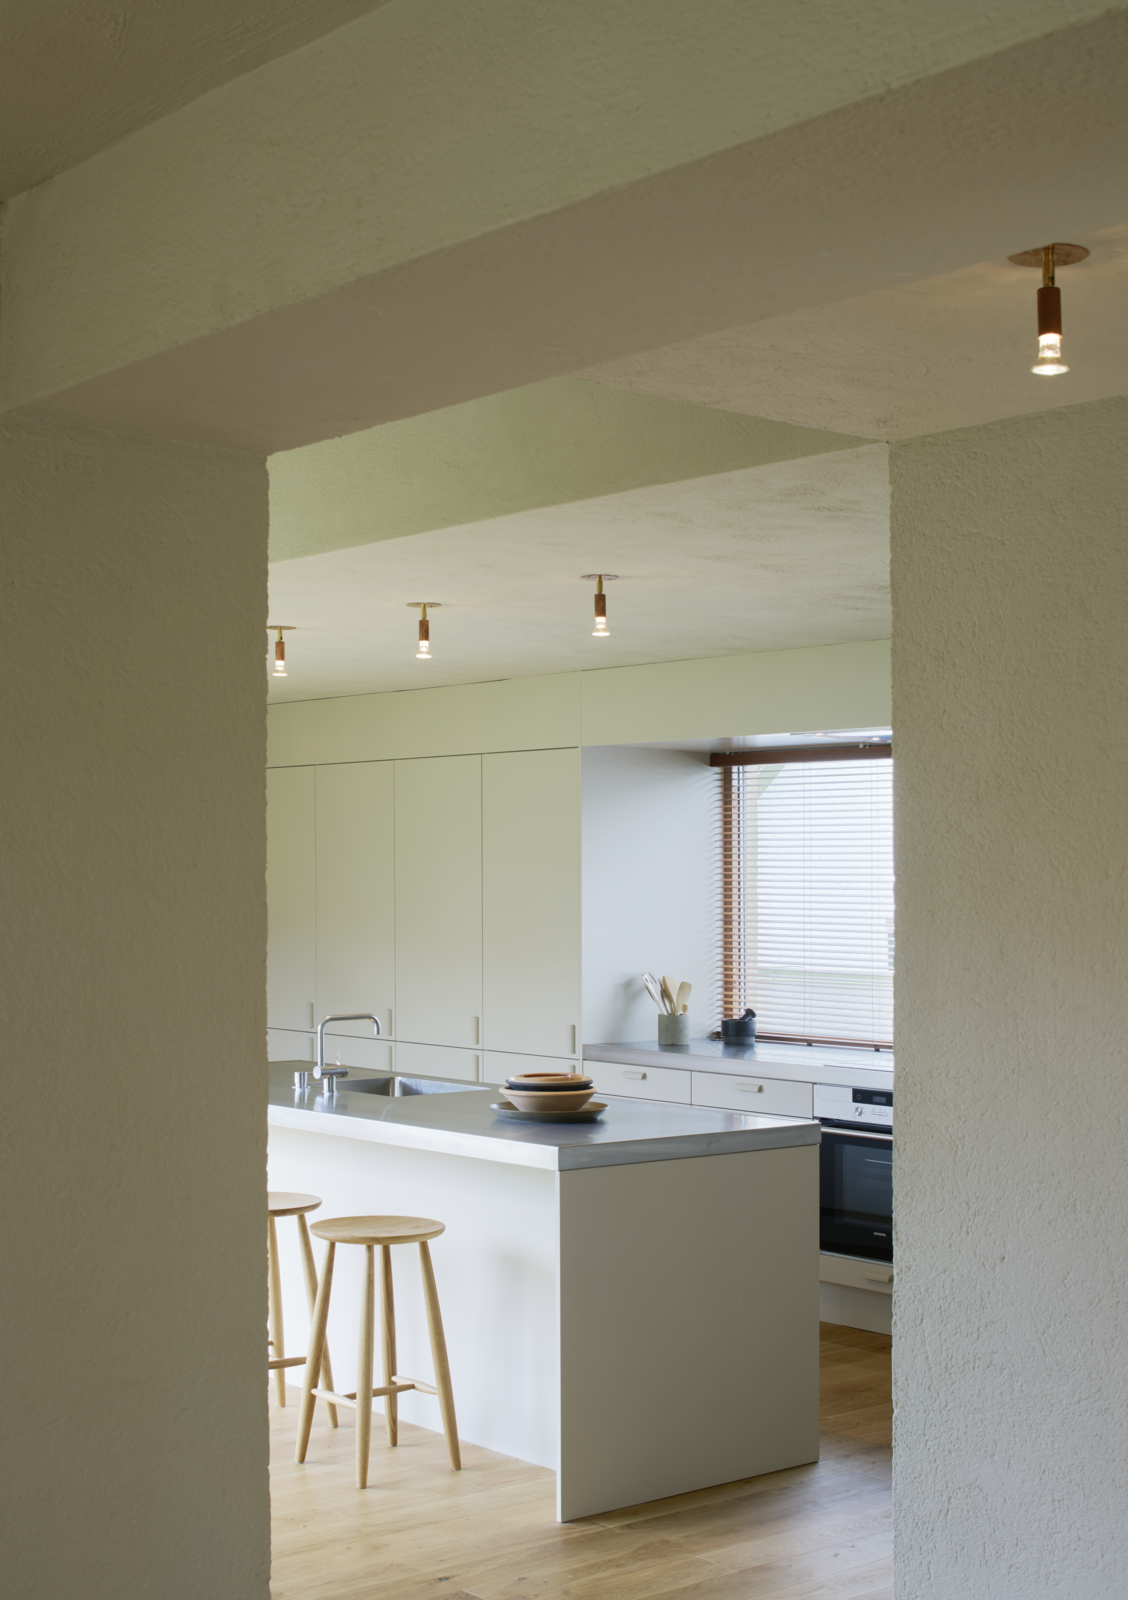 Kitchen, Medium Hardwood Floor, White Cabinet, Metal Counter, and Ceiling Lighting  Photo 6 of 12 in Sleek Scandinavian Design Permeates a Family's Summer House in an Old Fishing Village